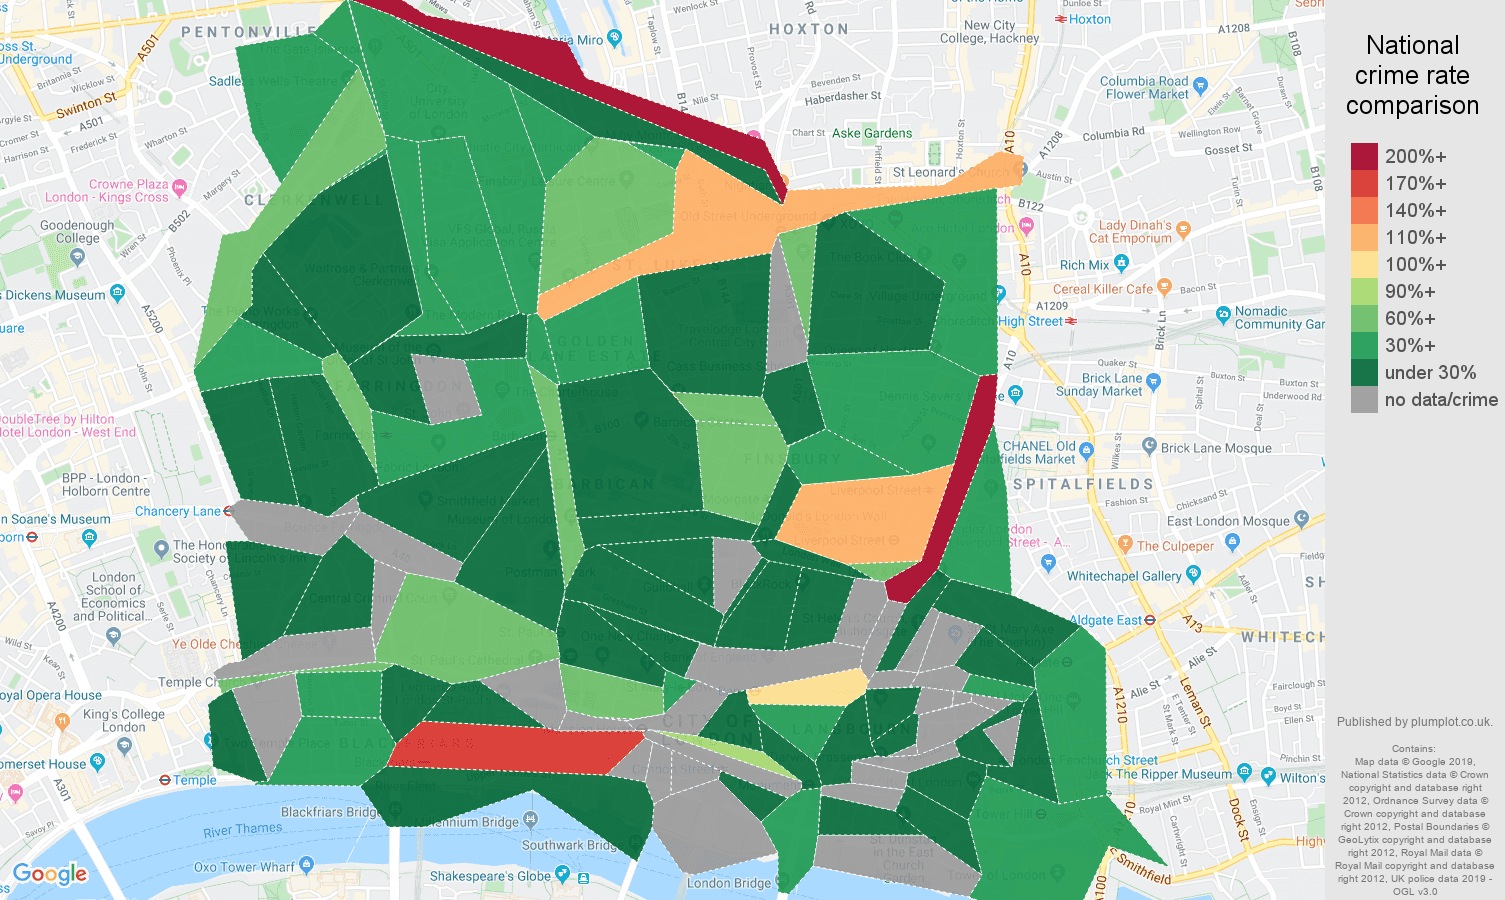 East Central London public order crime rate comparison map